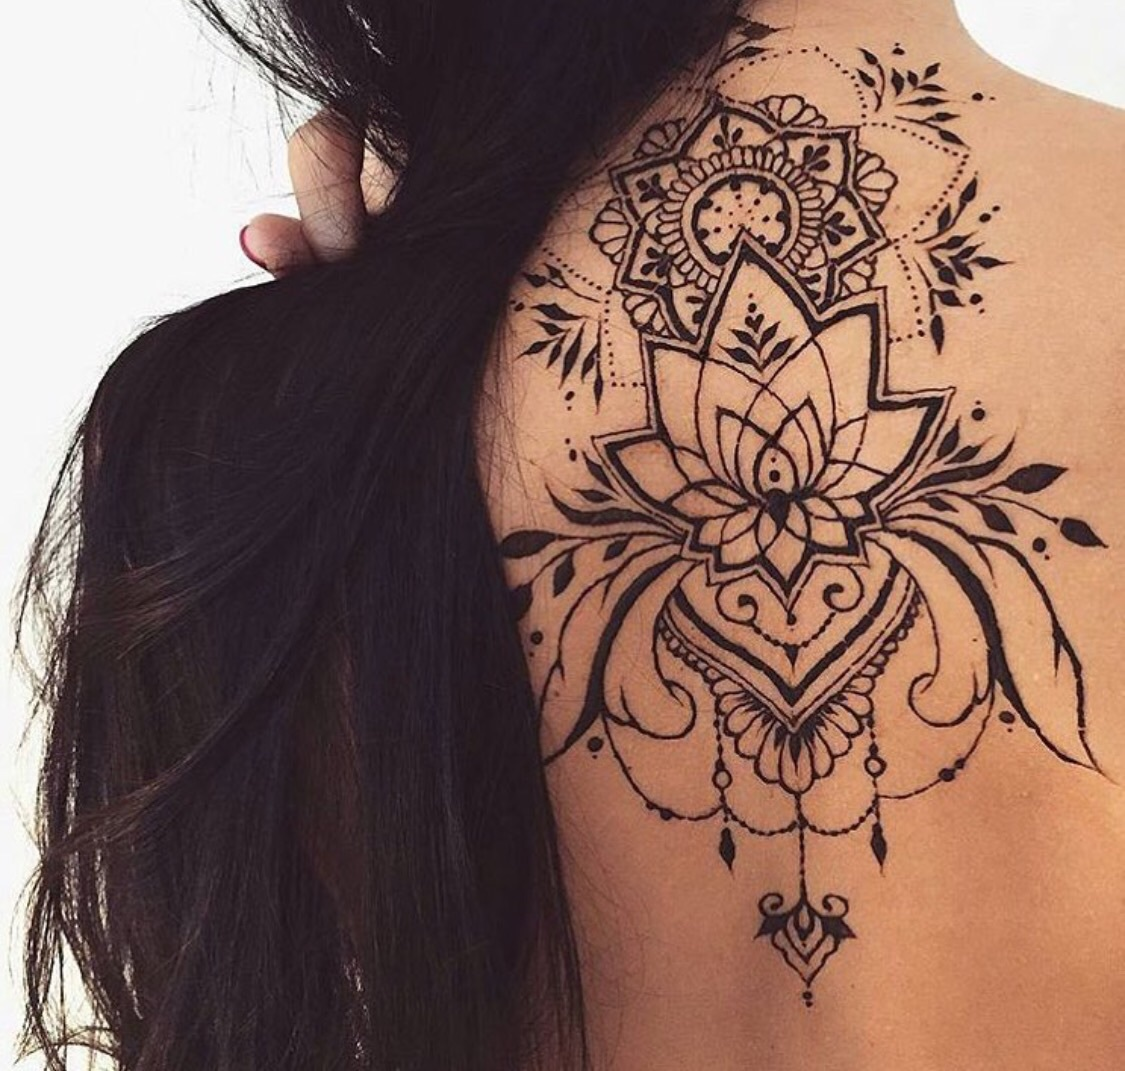 art, girlswithtattoos, ink, inked, tat